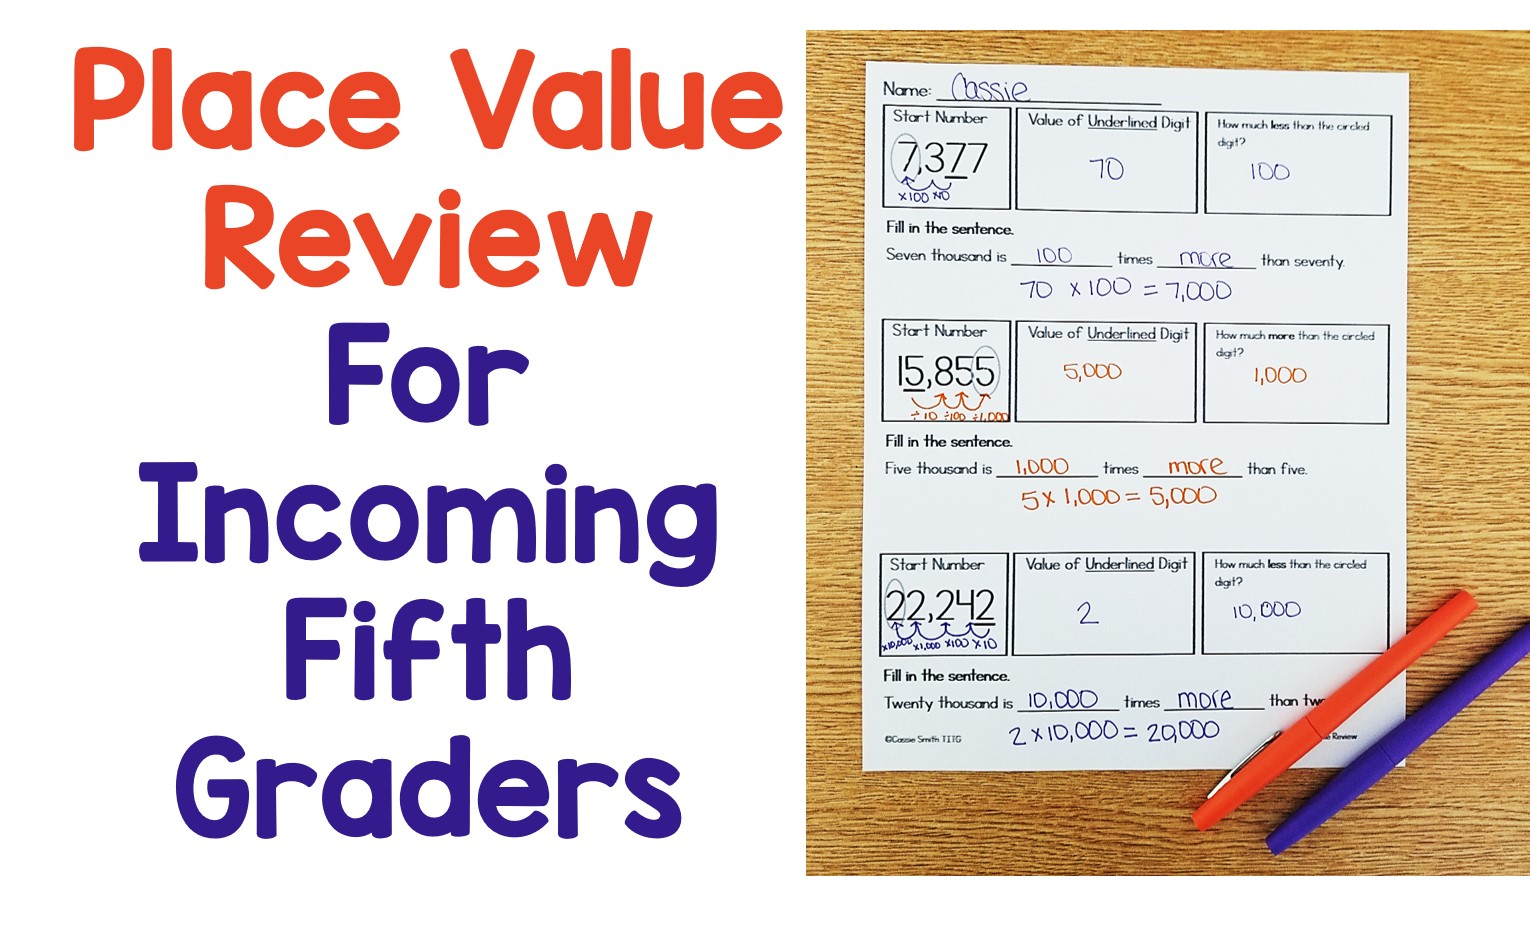 Place Value Review For Incoming Fifth Graders